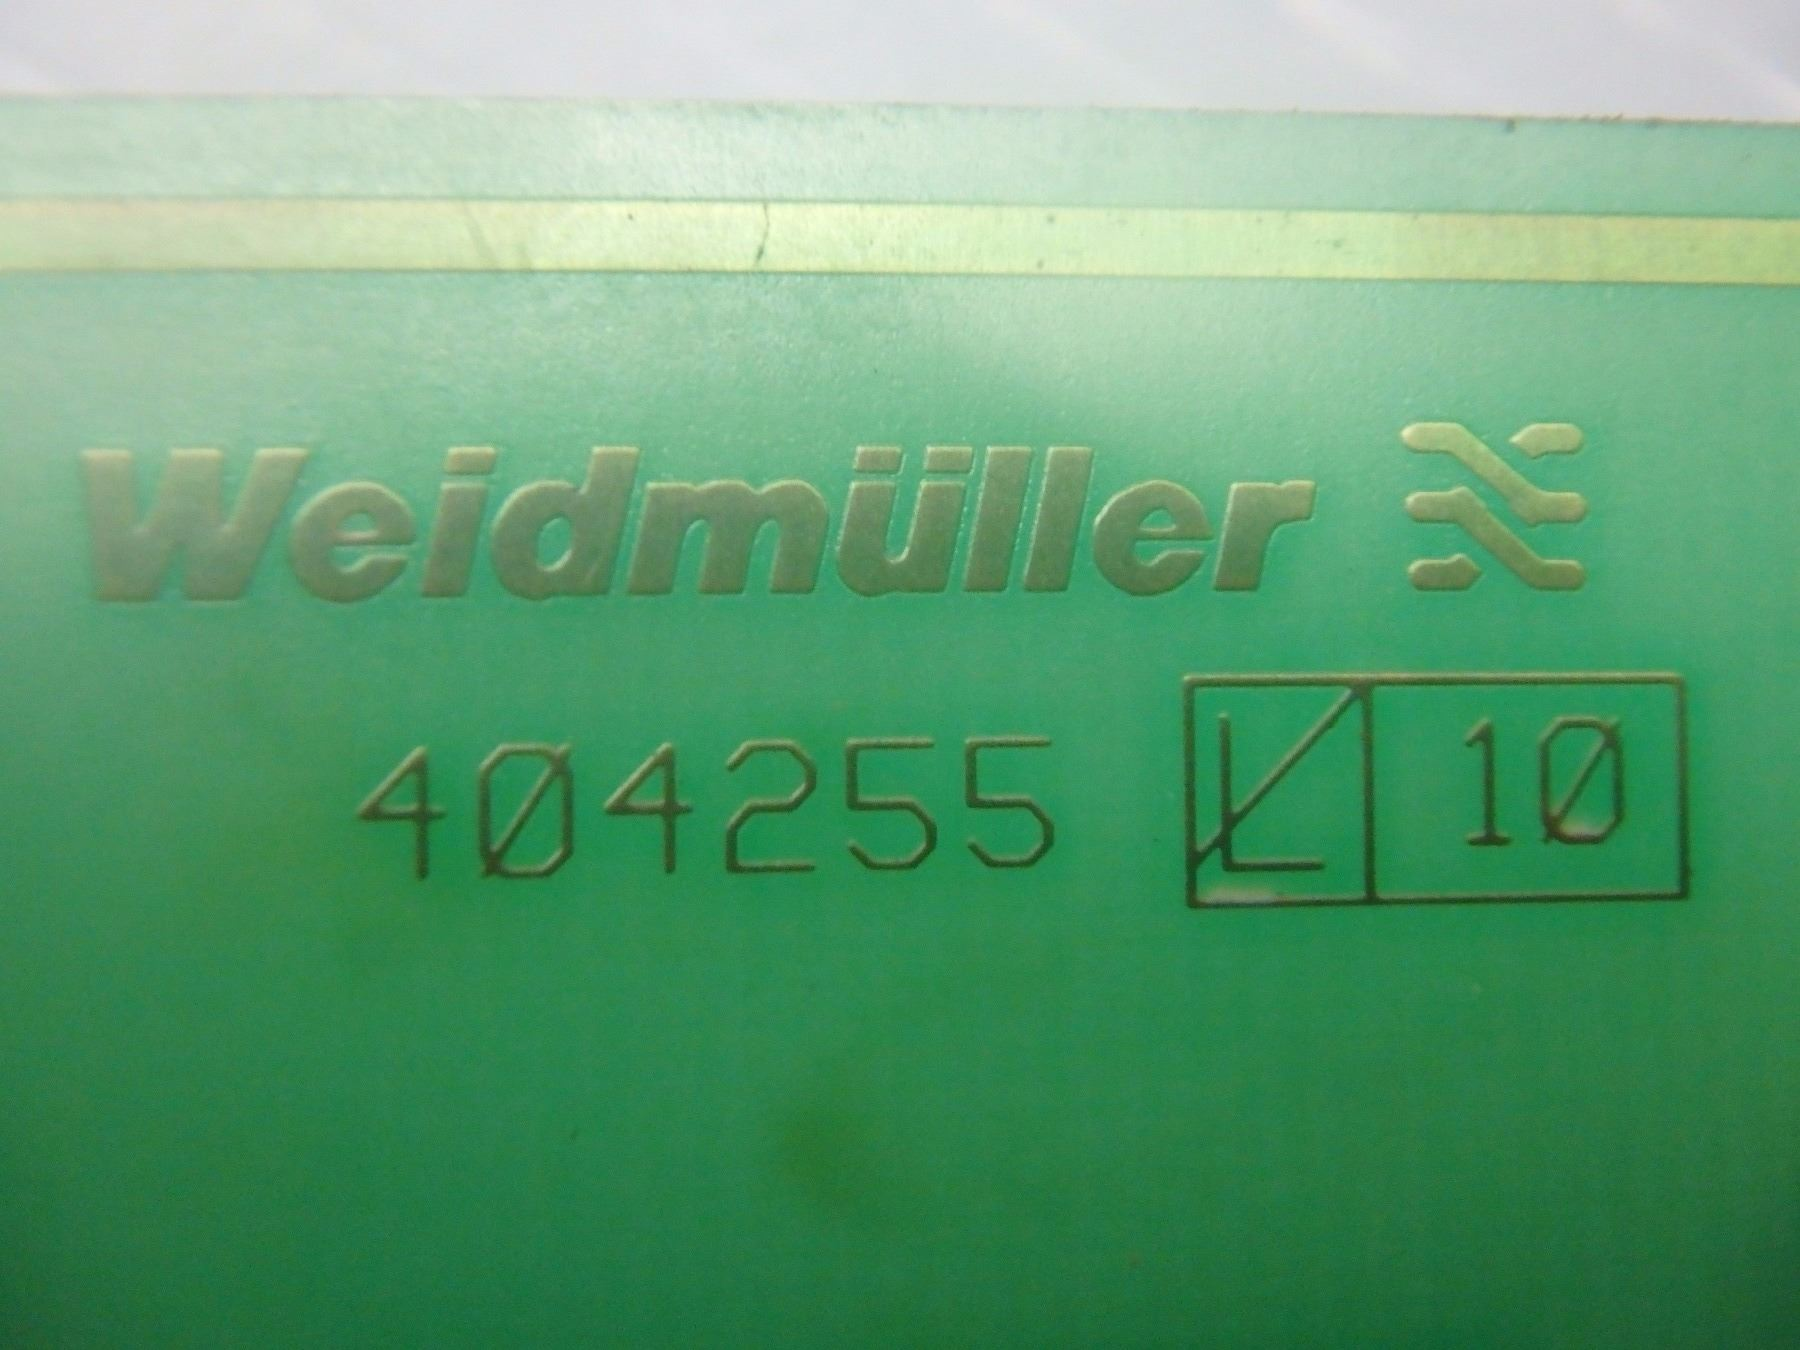 Weidmuller 404255 Relay Board Terminal Relays Image 4